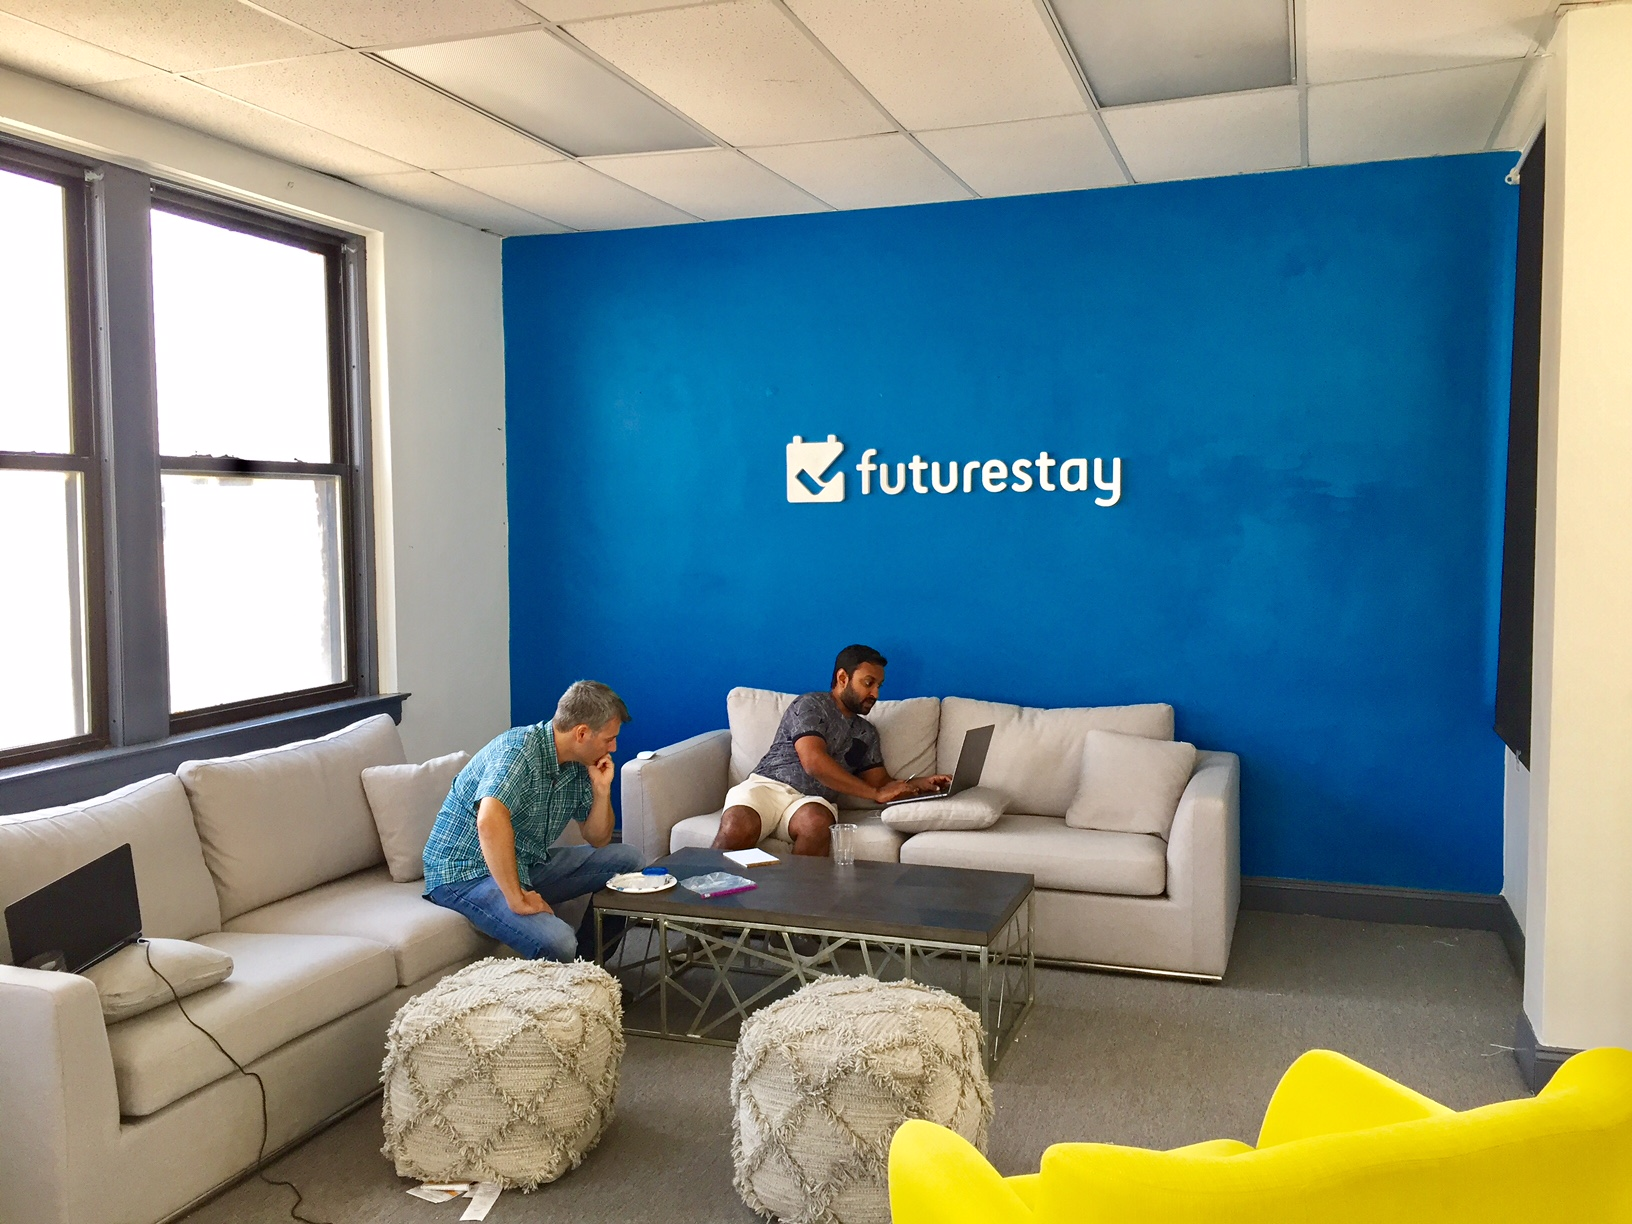 Futurestay Team Working in the Lounge